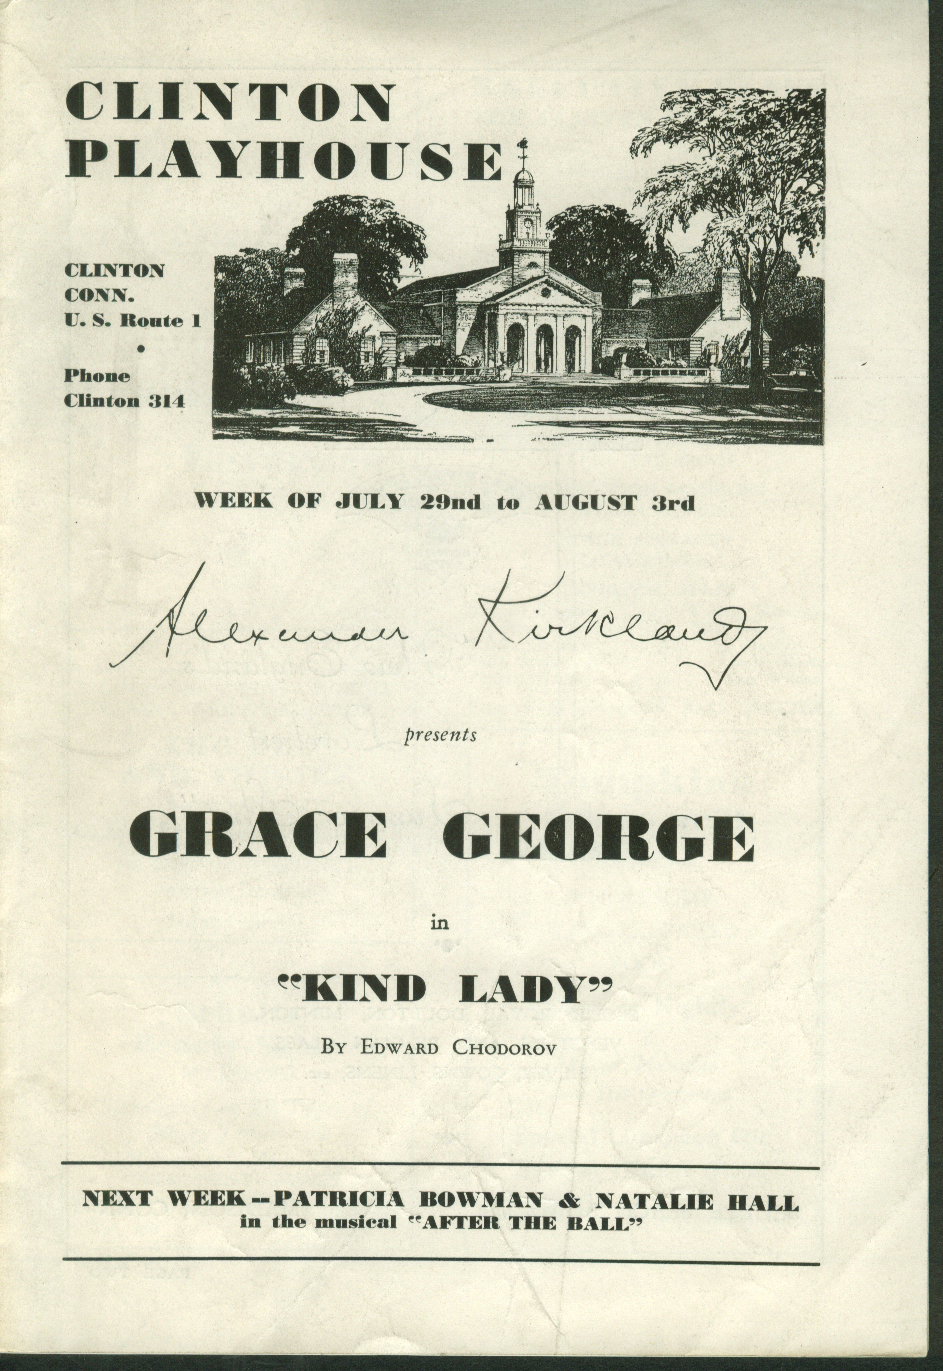 Clinton Playhouse Grace George Kind Lady program 1940s